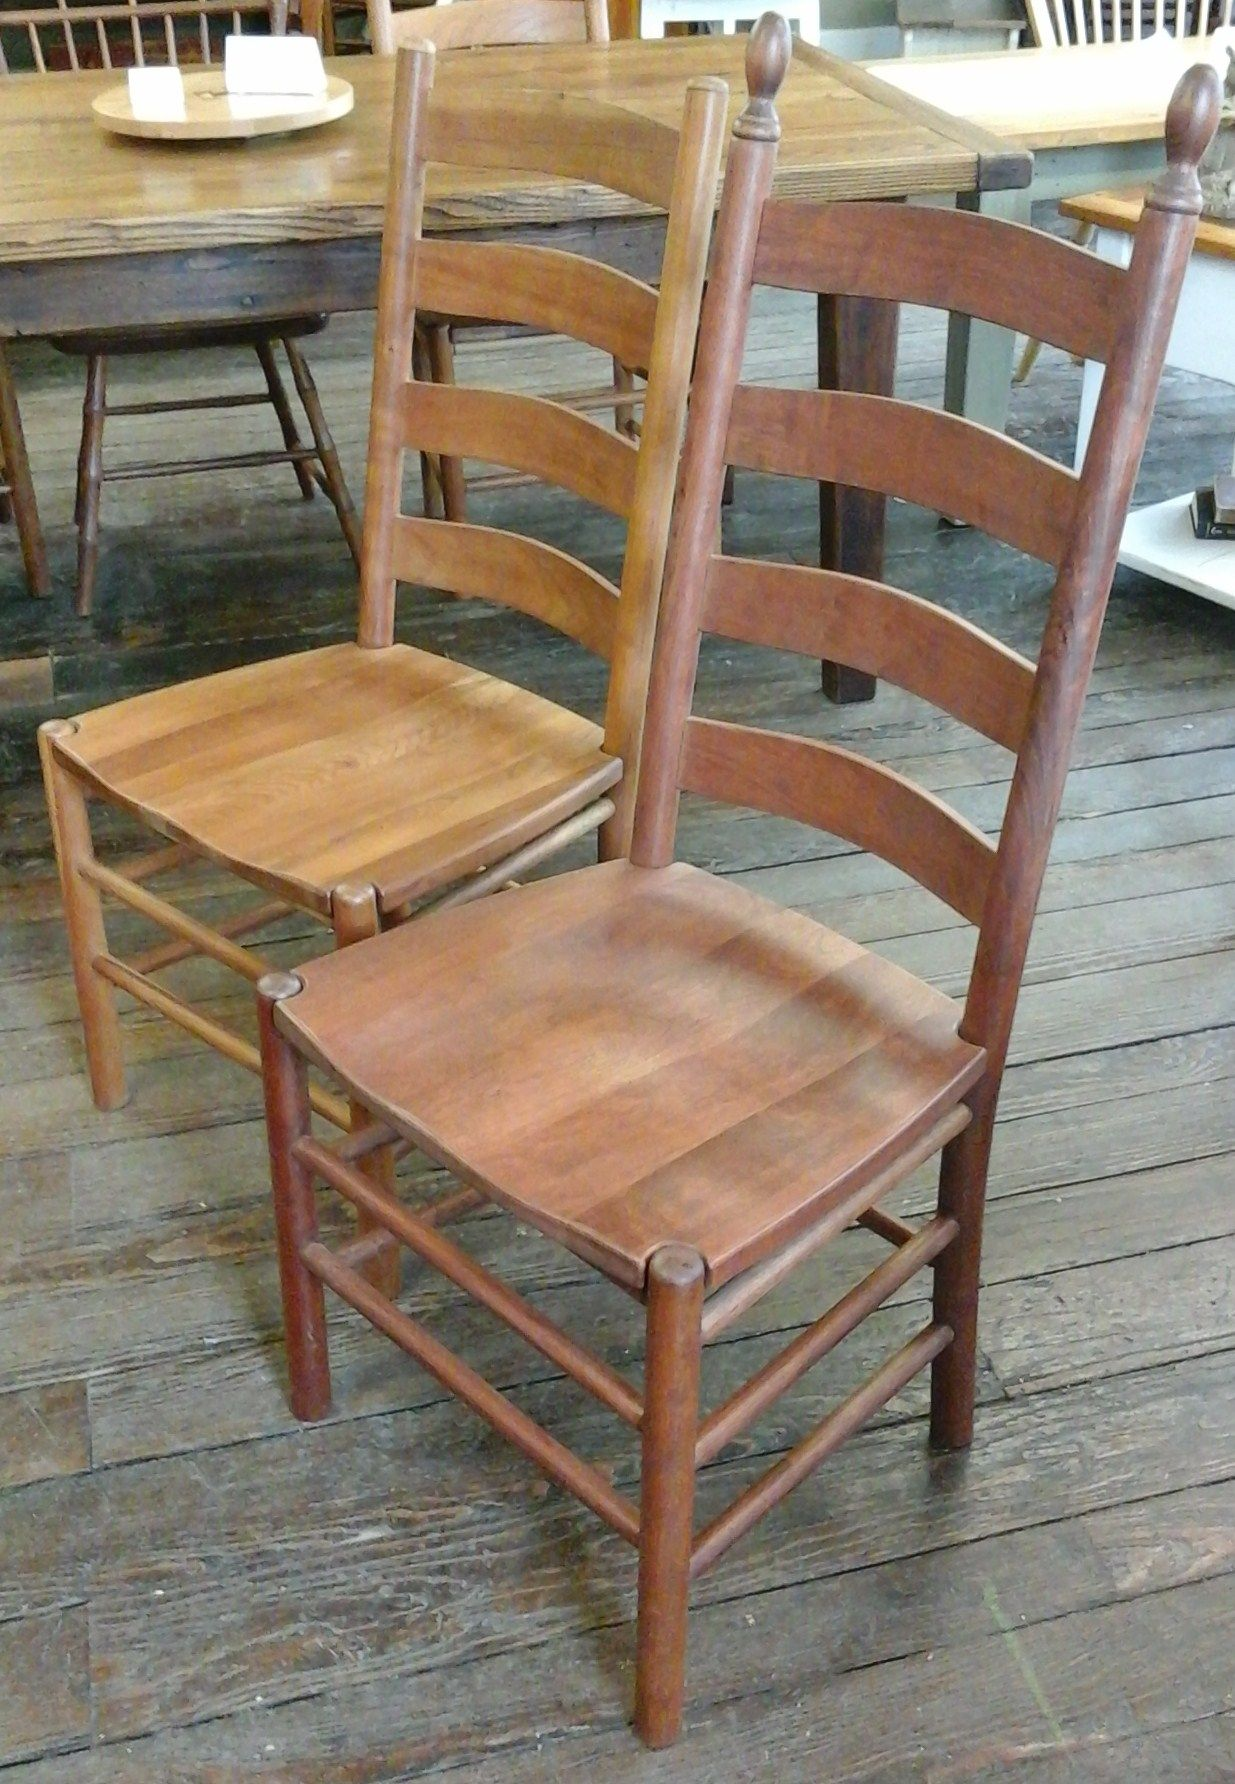 shaker ladder back chair juni accessories handmade hardwood chairs with finial tops reclaimed barnwood furniture in